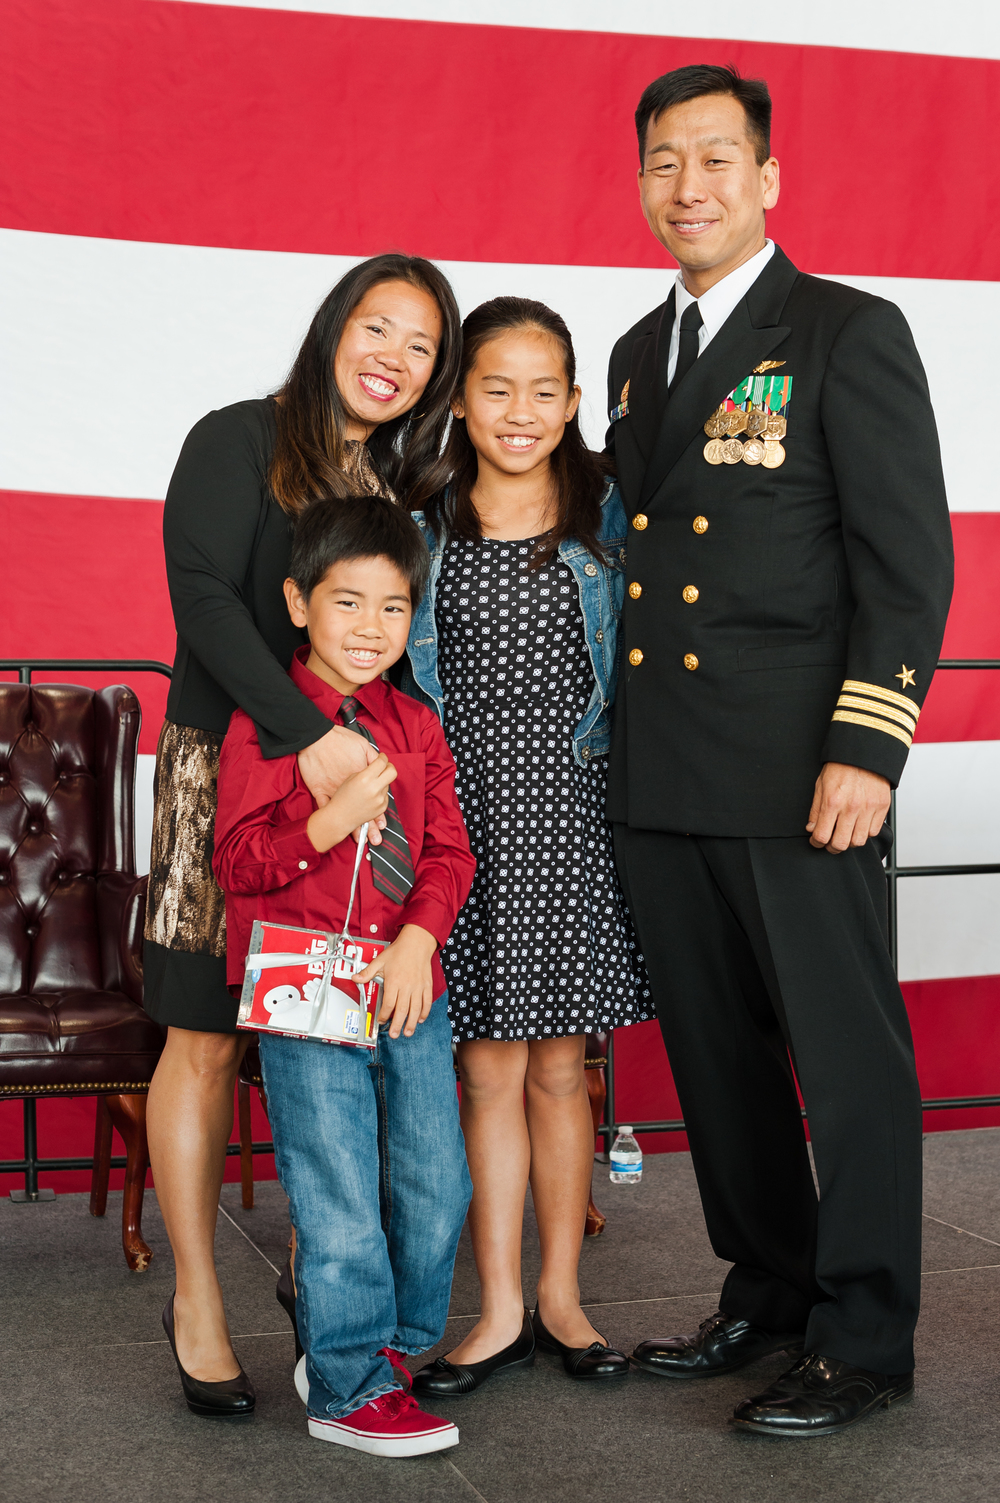 family military photographer mugu.jpg